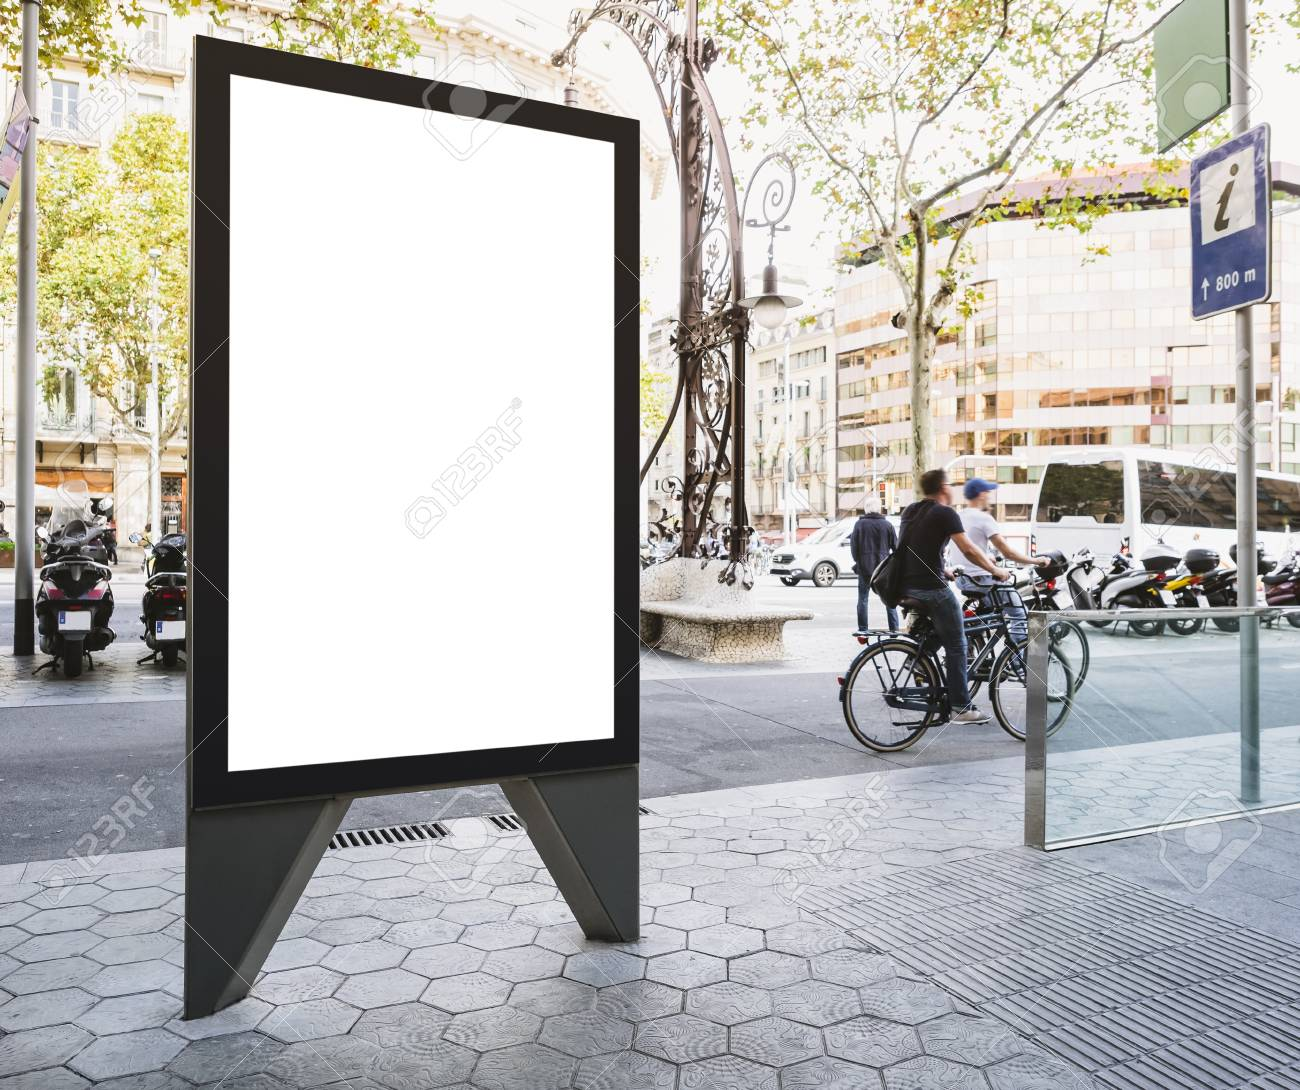 Mock up Banner stand Media outdoor Information Sign with people riding on City street - 115334185